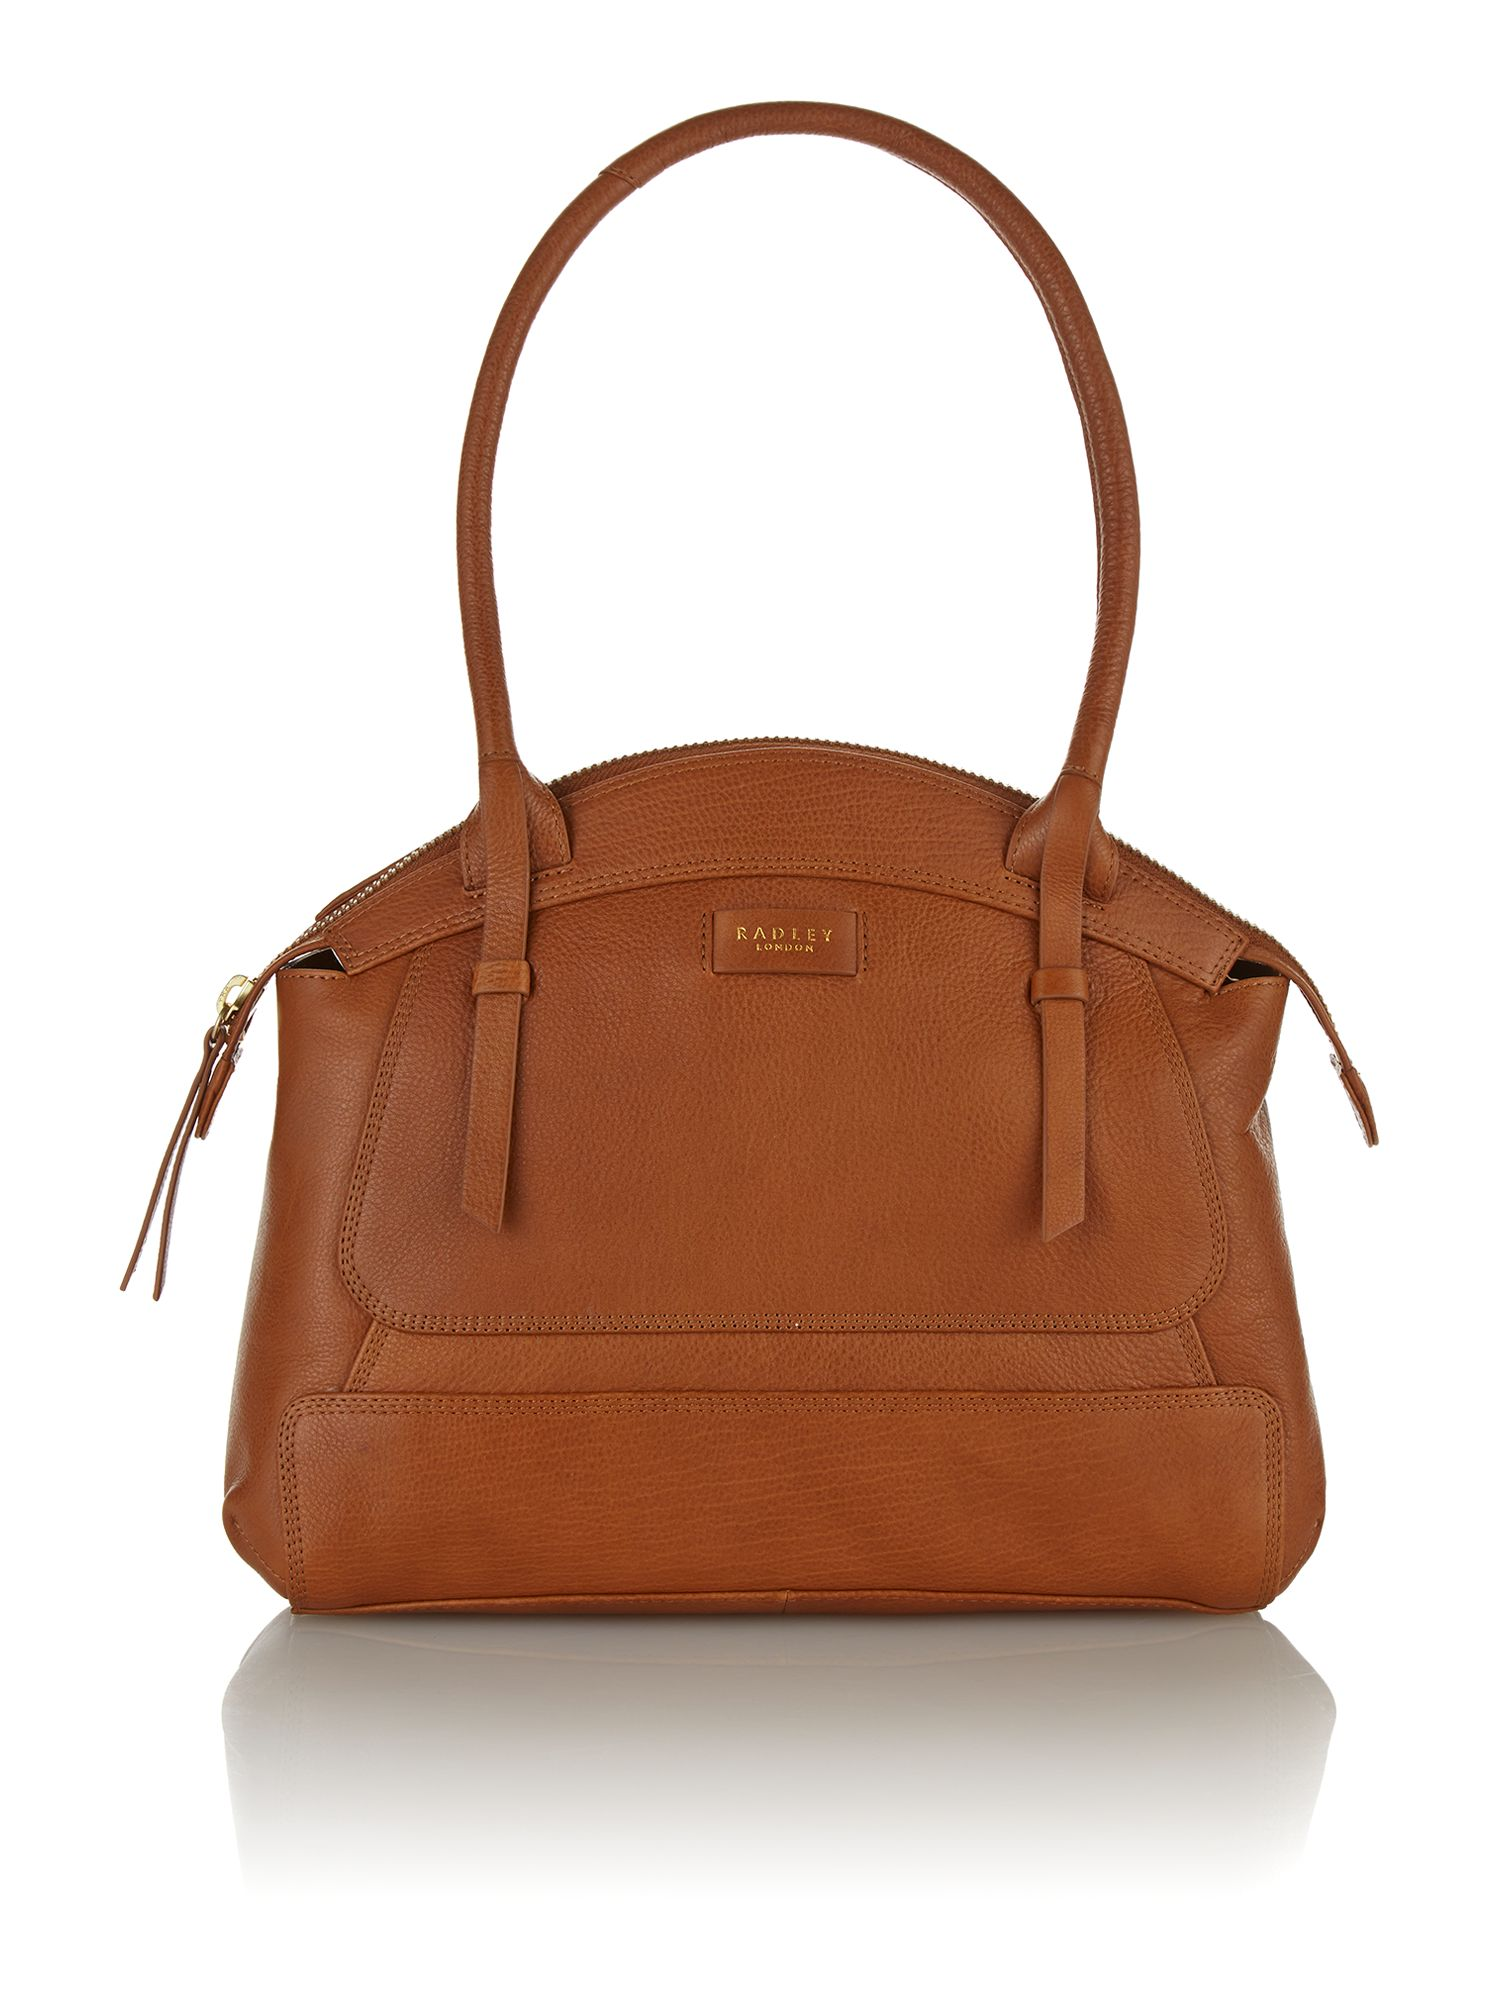 Tan medium tote bag